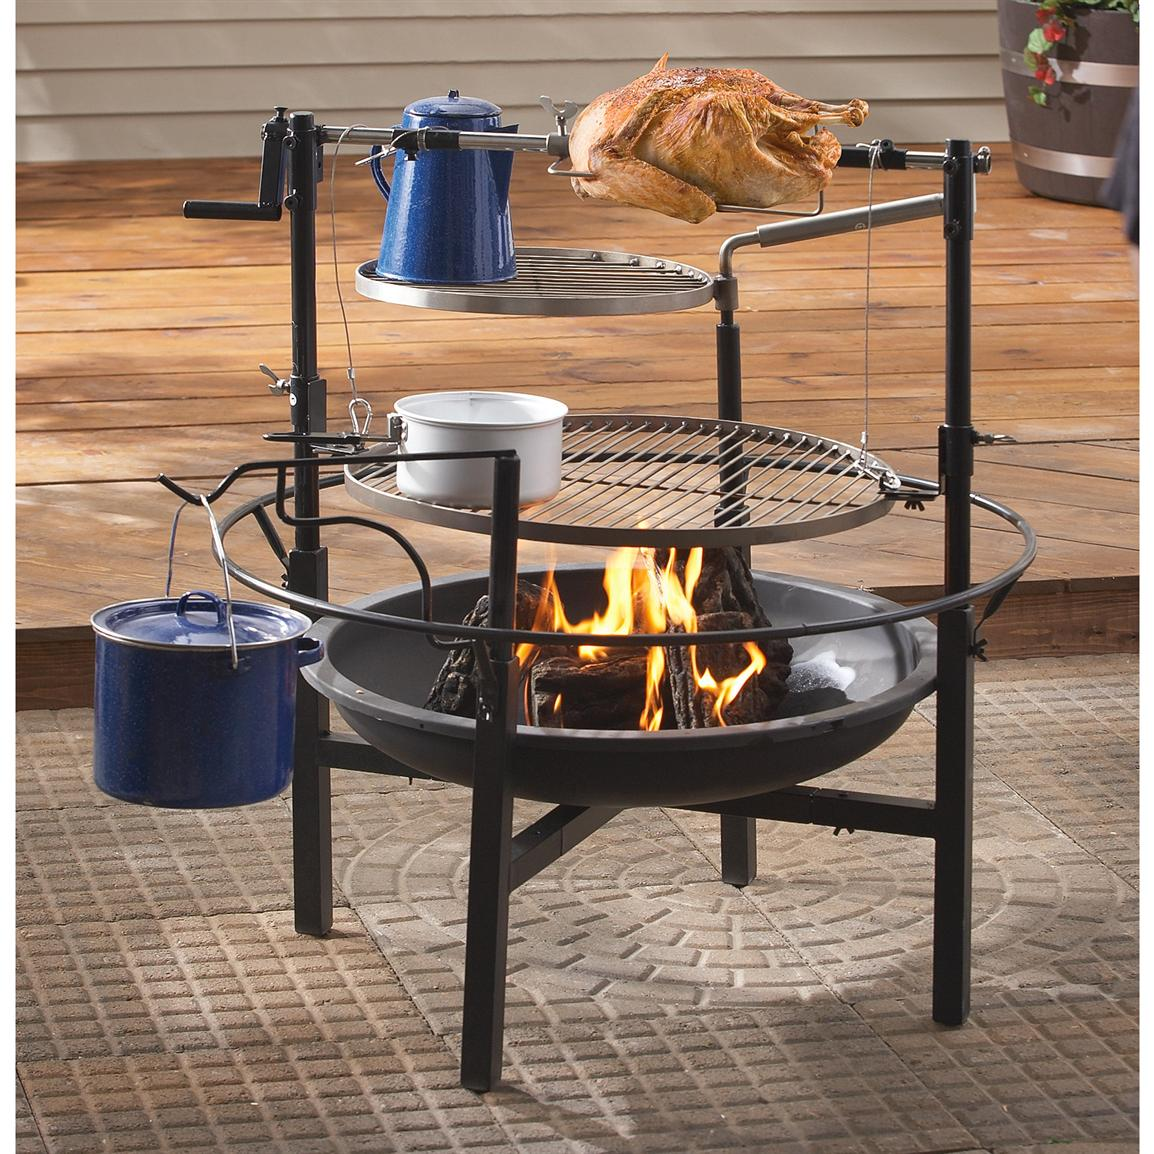 Unique Kitchen Utensils Fire Pit Cooking Amazing Way To Make The Most From Fire